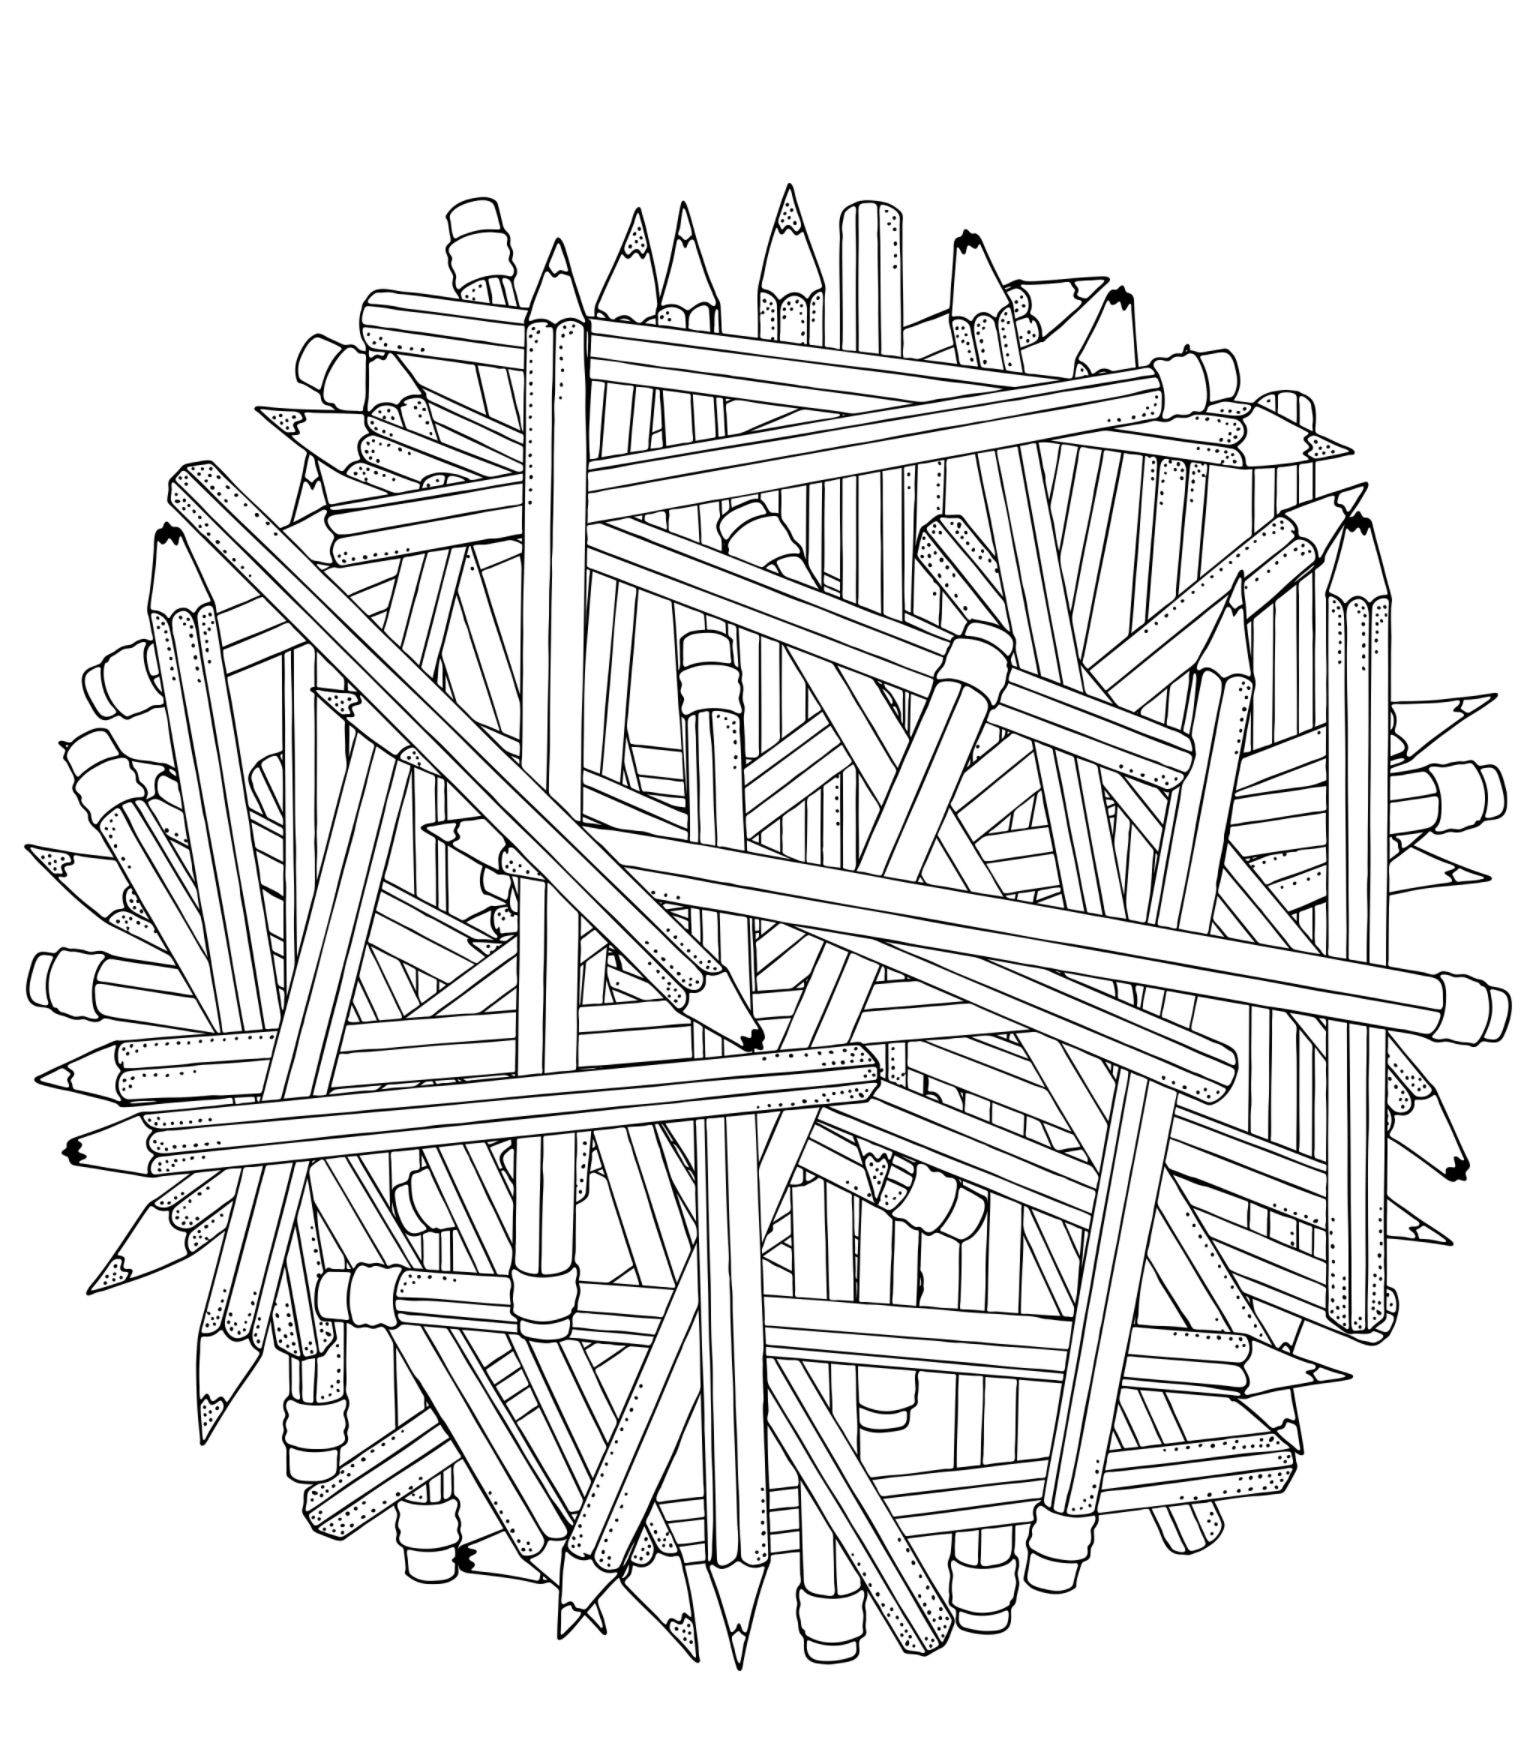 Coloring Page For Adults And Teens Mandala Coloring Pages Coloring Books Coloring Pages